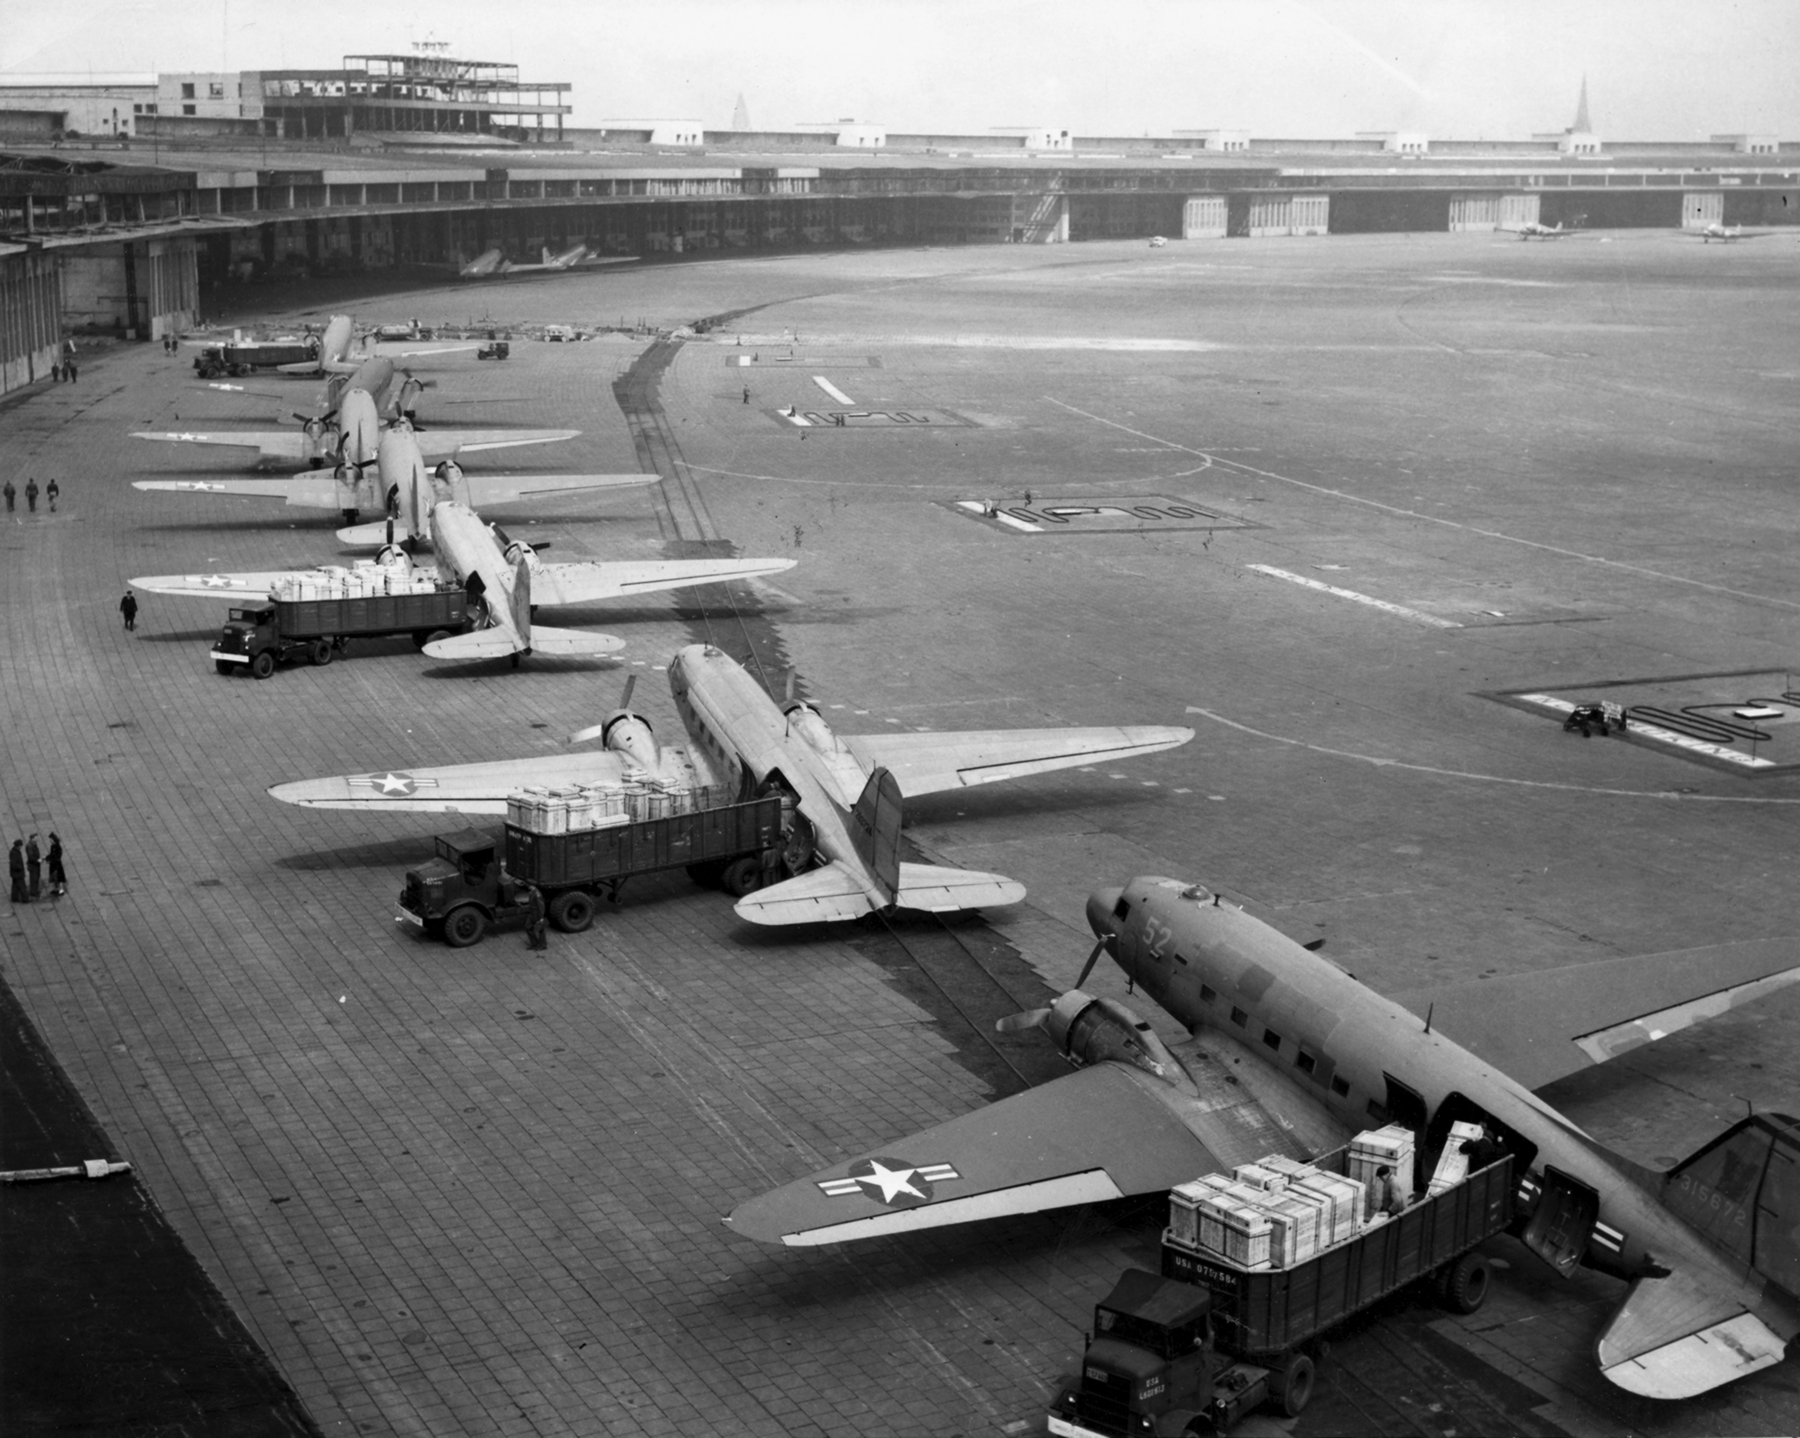 Planes being unloaded at the Tempelhof airport in Berlin  Photo: wiki